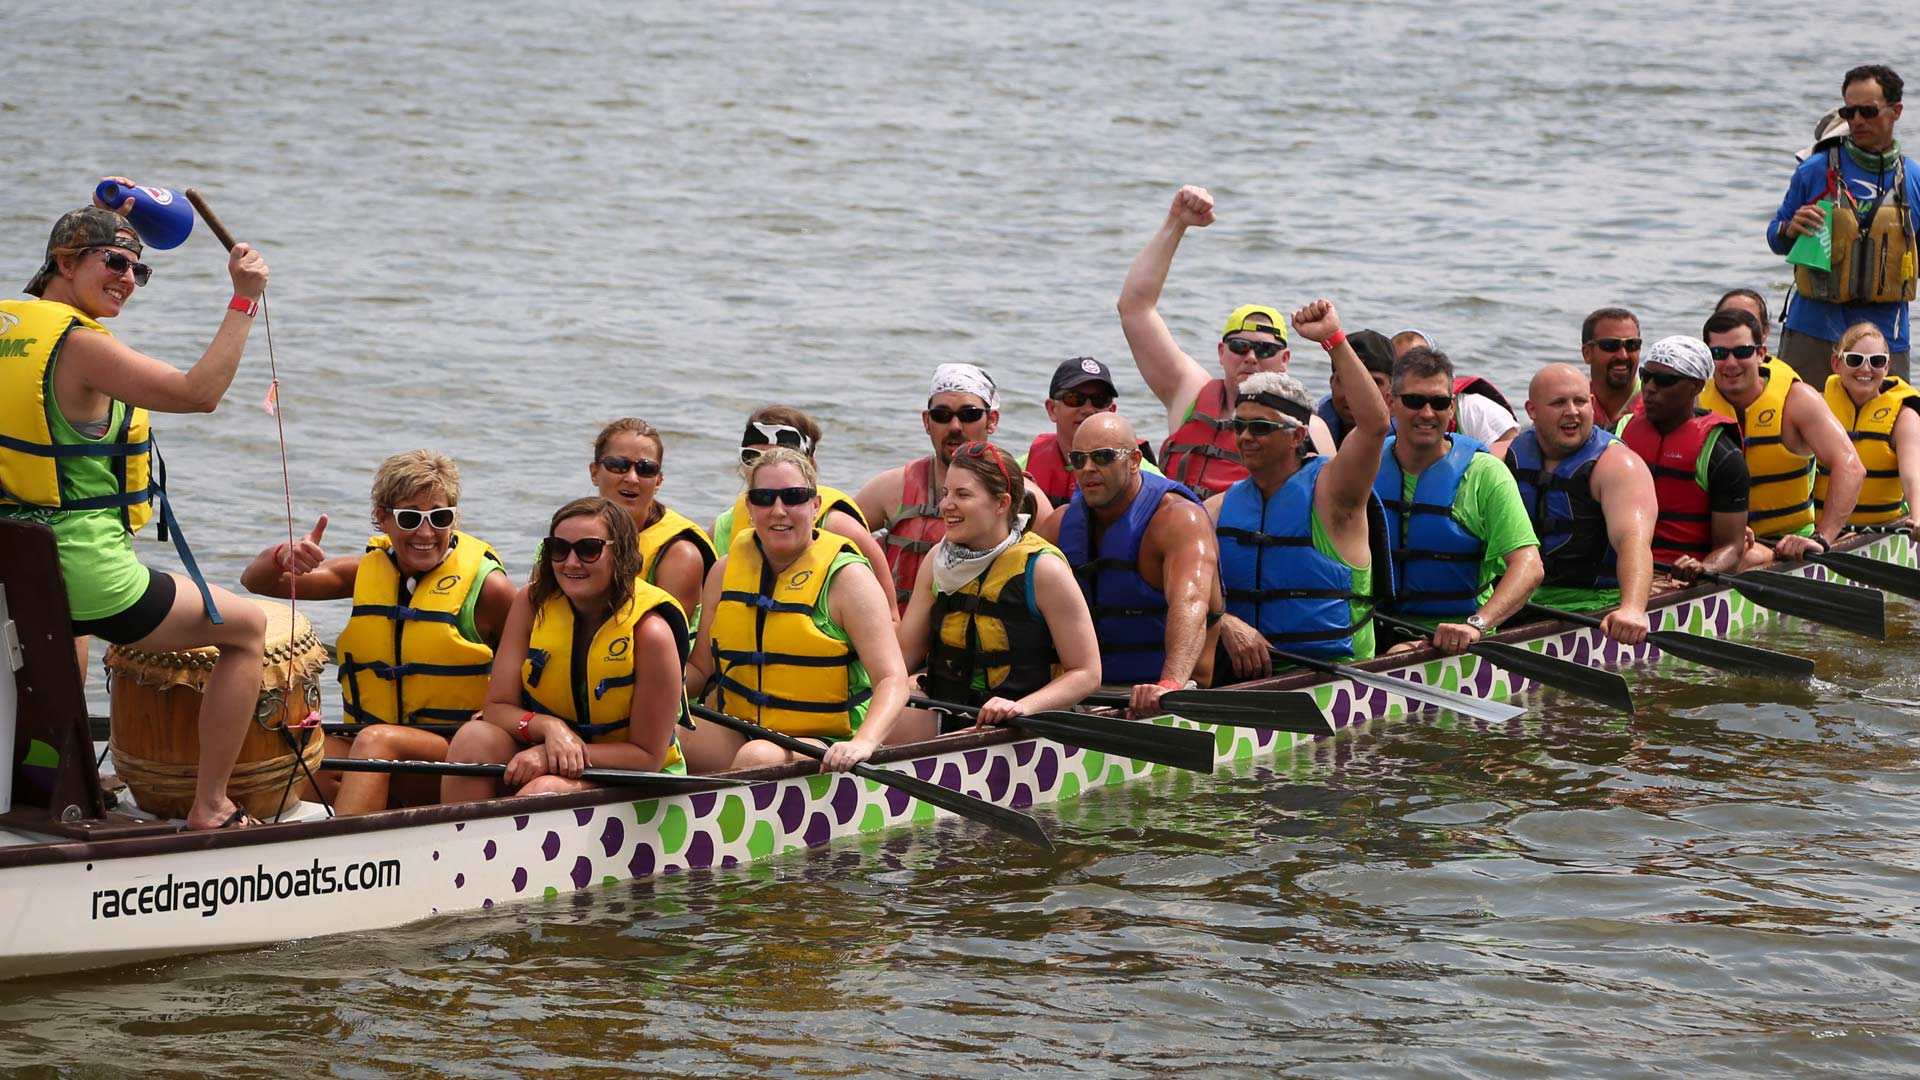 Decatur Dragon Boat Races